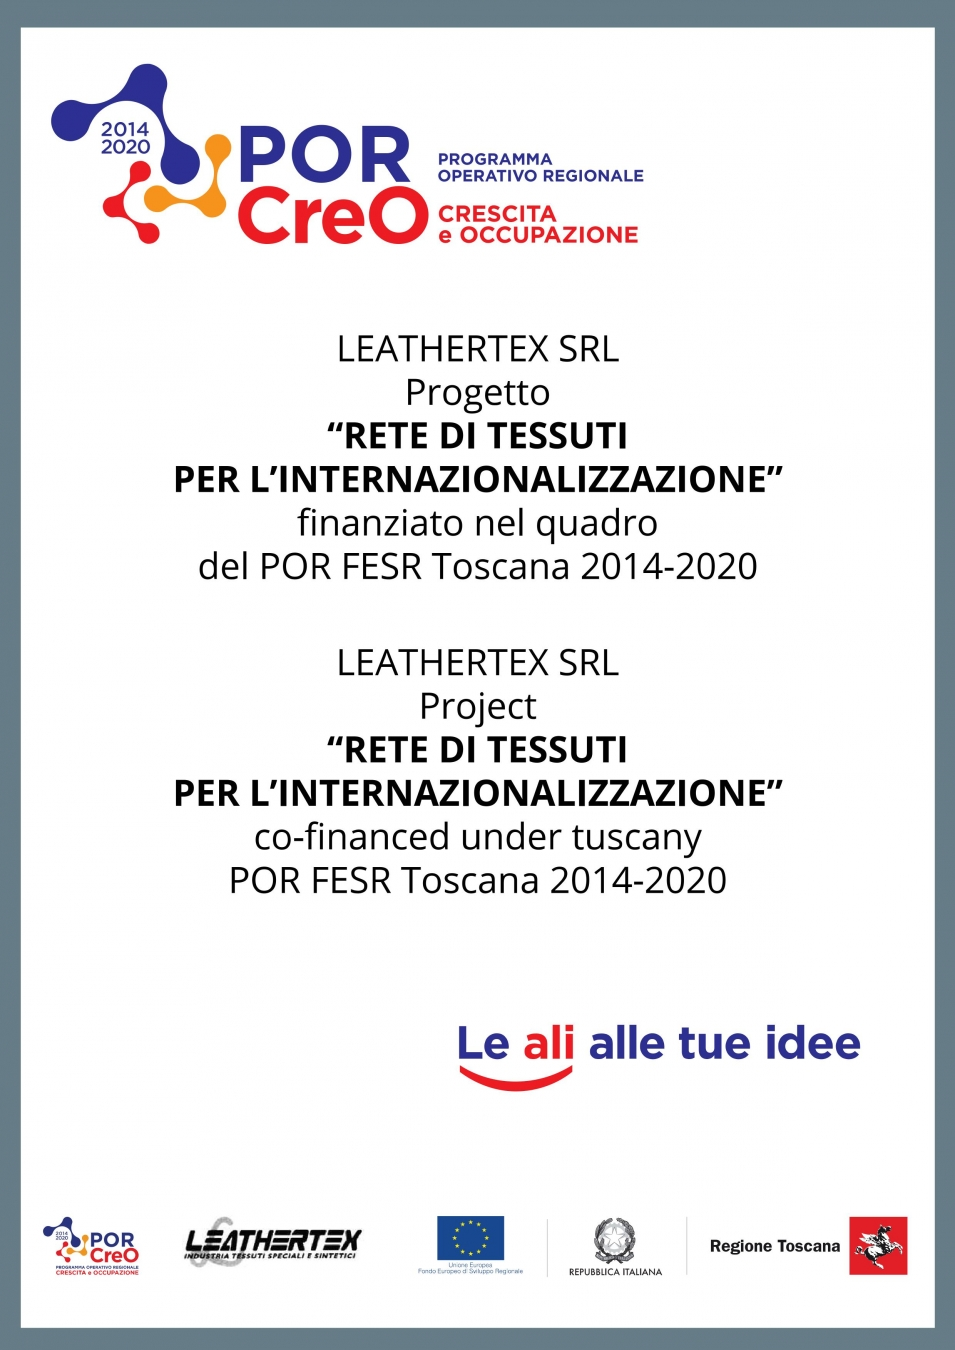 The internationalization project Rete di tessuti per l'internazionalizzazione